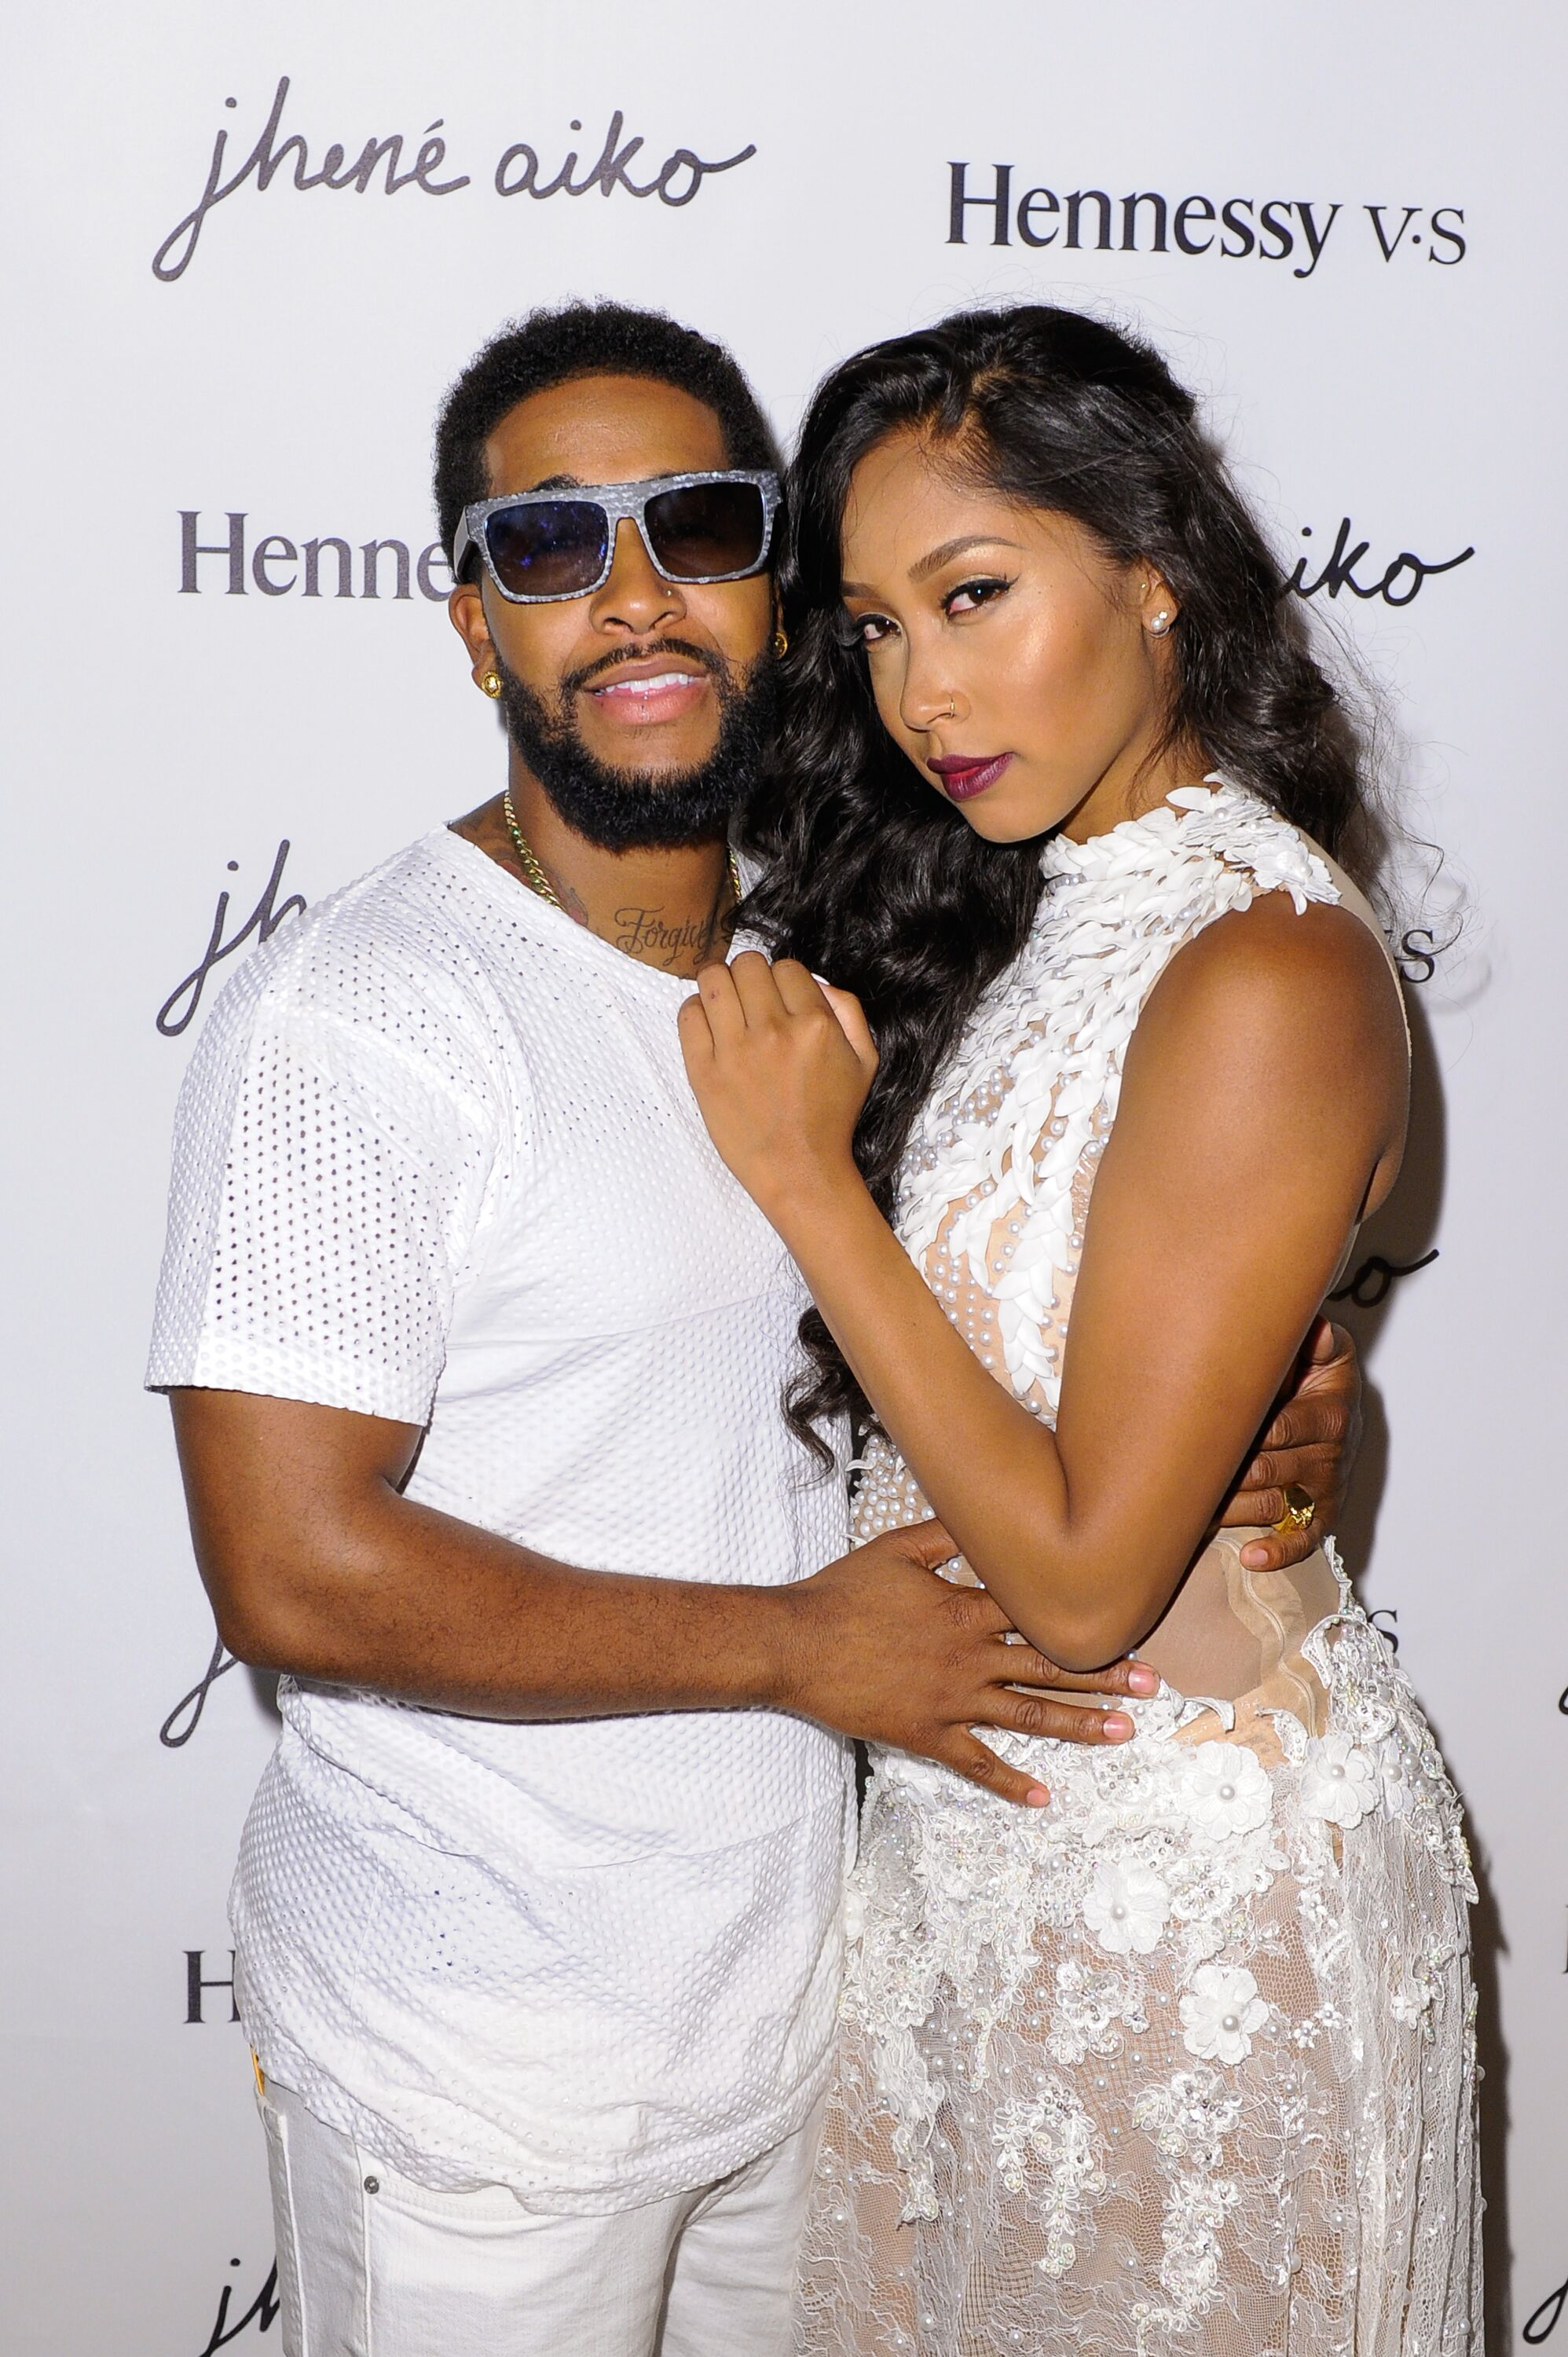 Omarion and Apryl Jones attend the Jhene Aiko Souled Out event sponsored by Hennessy V.S on September 9, 2014 in West Hollywood, California | Photo: Getty Images